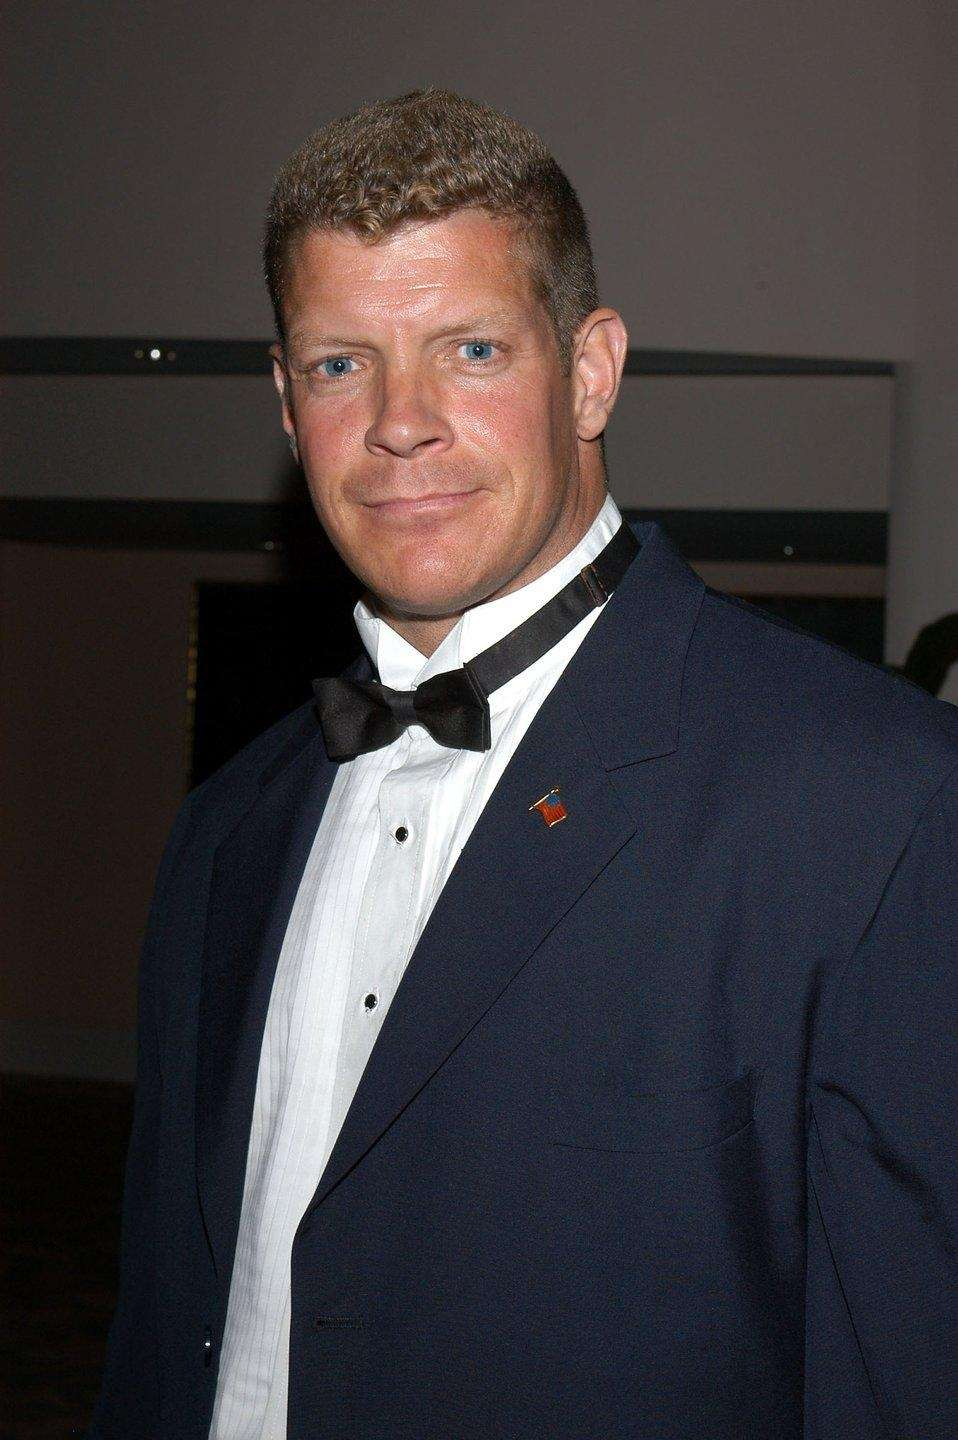 Lee Reherman is an actor and producer whose